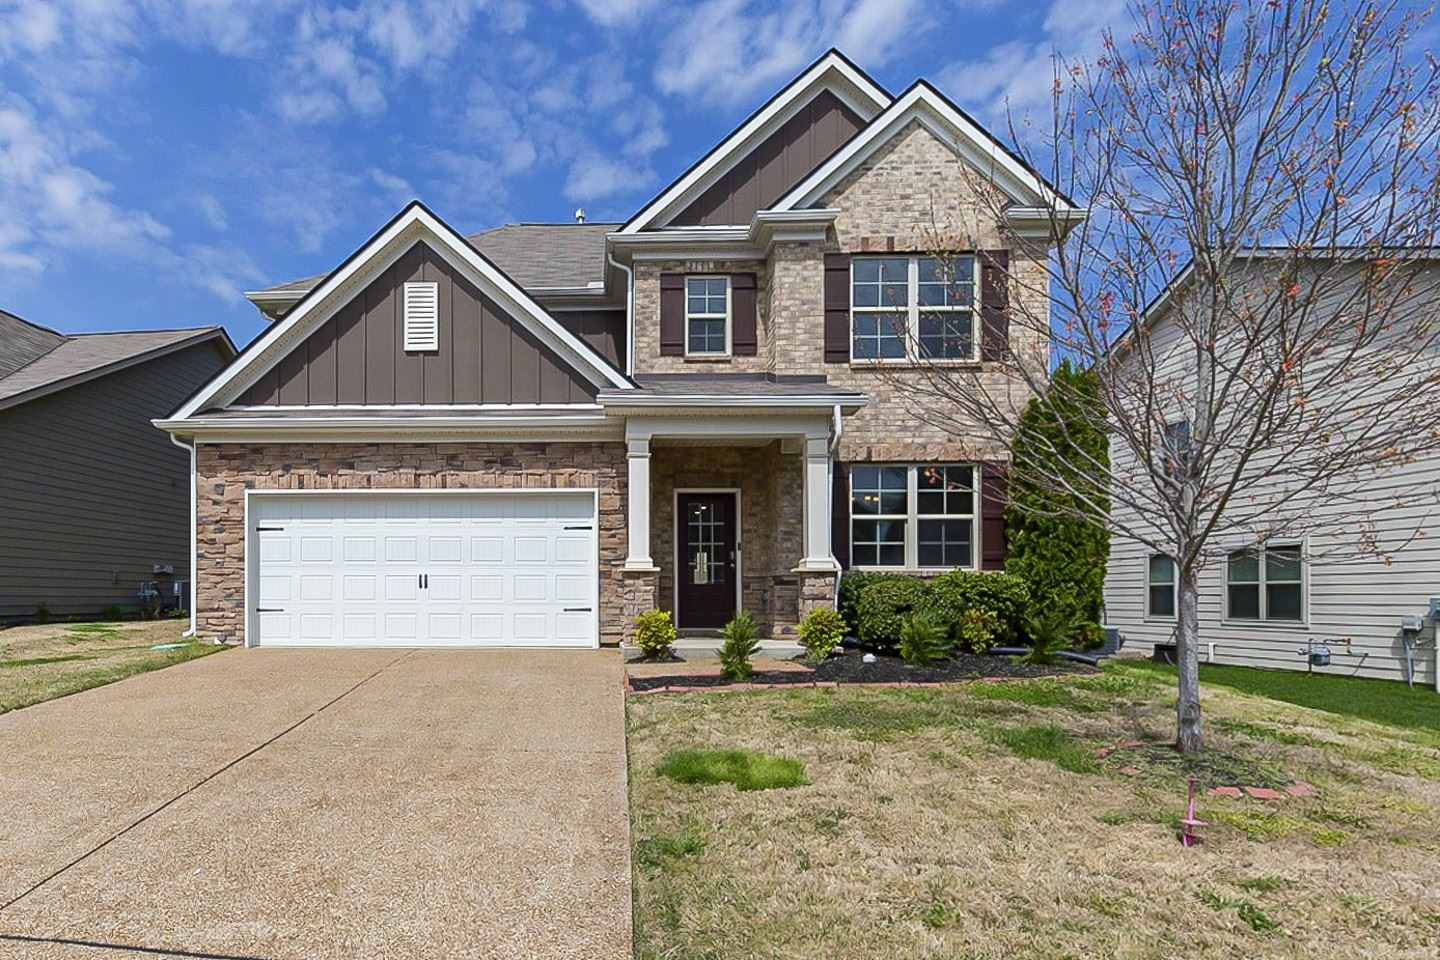 Photo of 3005 Alan Dr, Spring Hill, TN 37174 (MLS # 2242894)